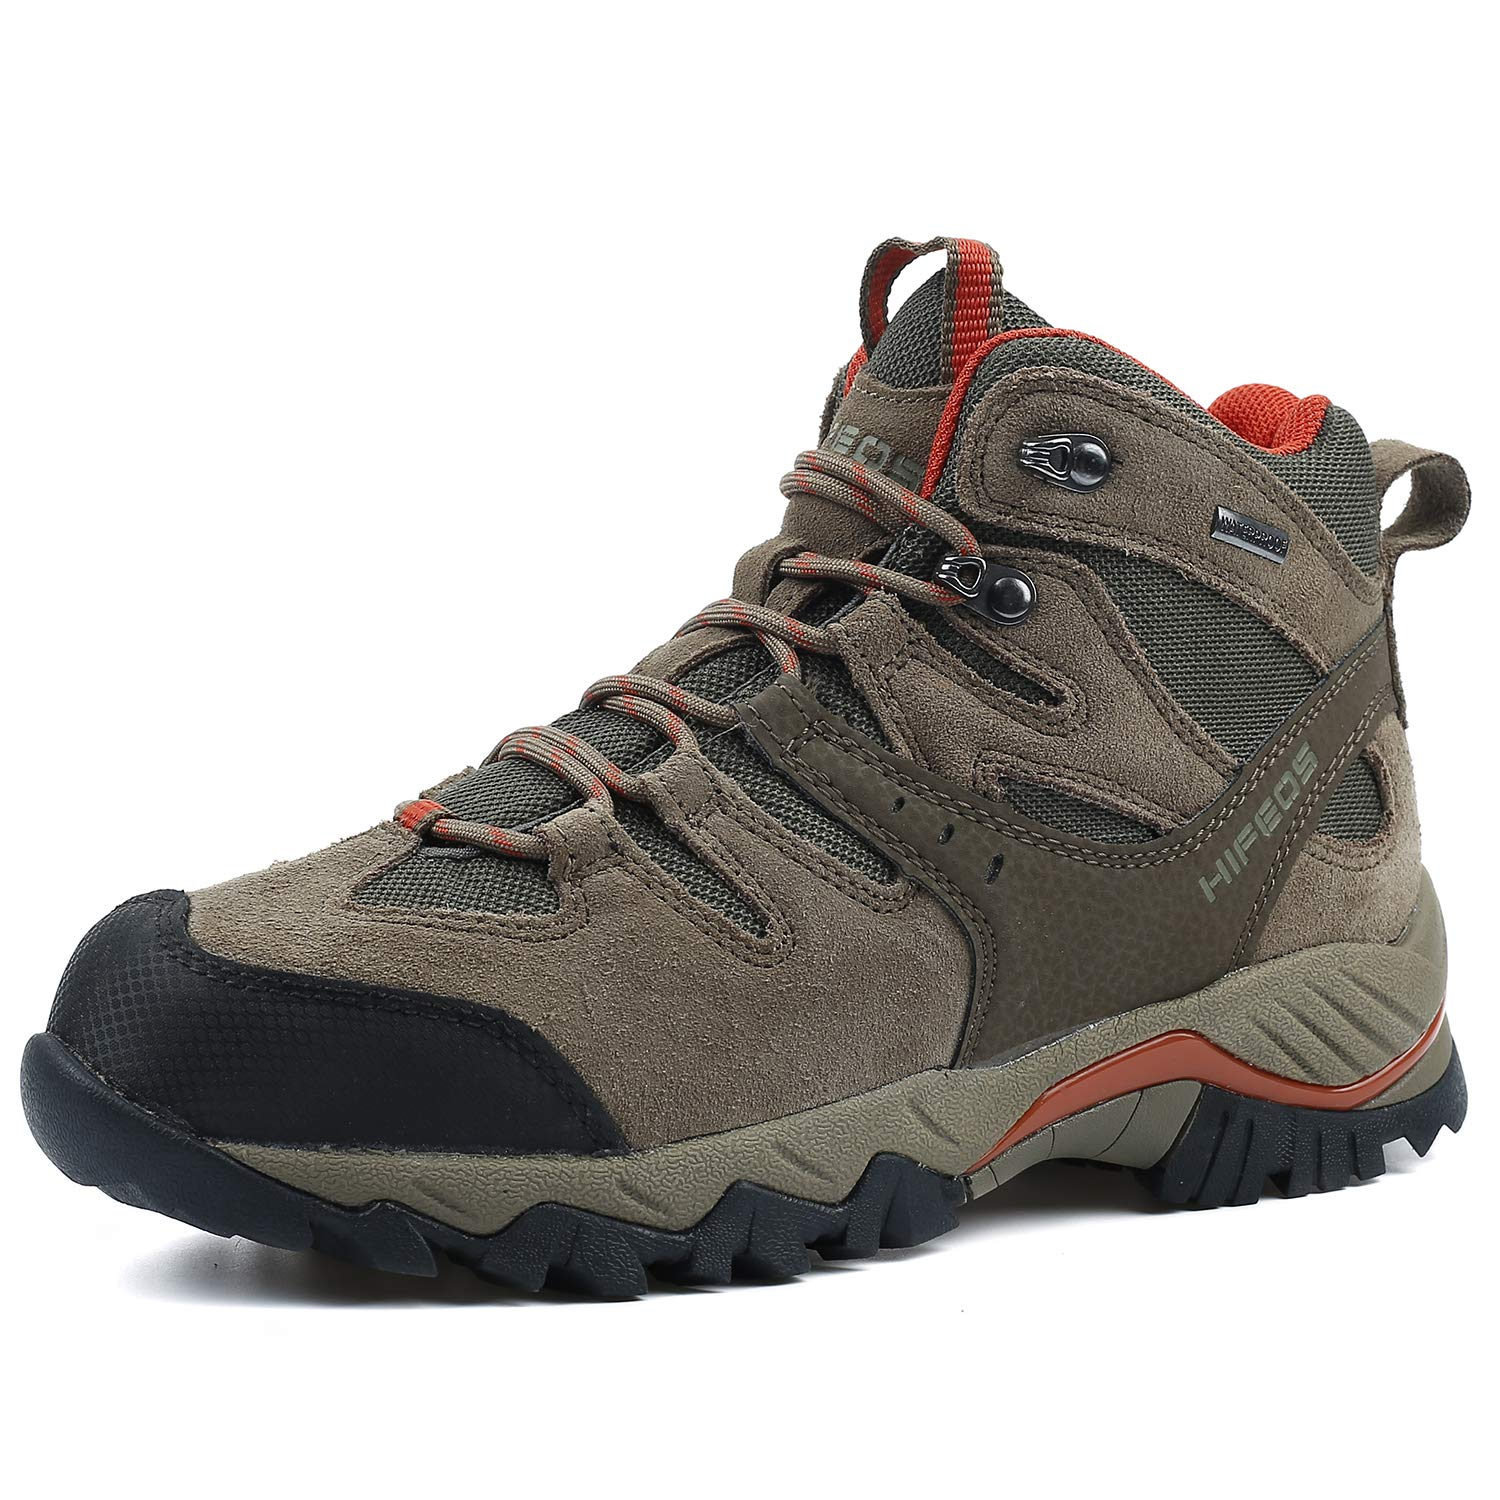 353c039e2a0 HIFEOS Hiking Boots Leather Trekking Shoes Outdoor Waterproof Backpacking  Shoes